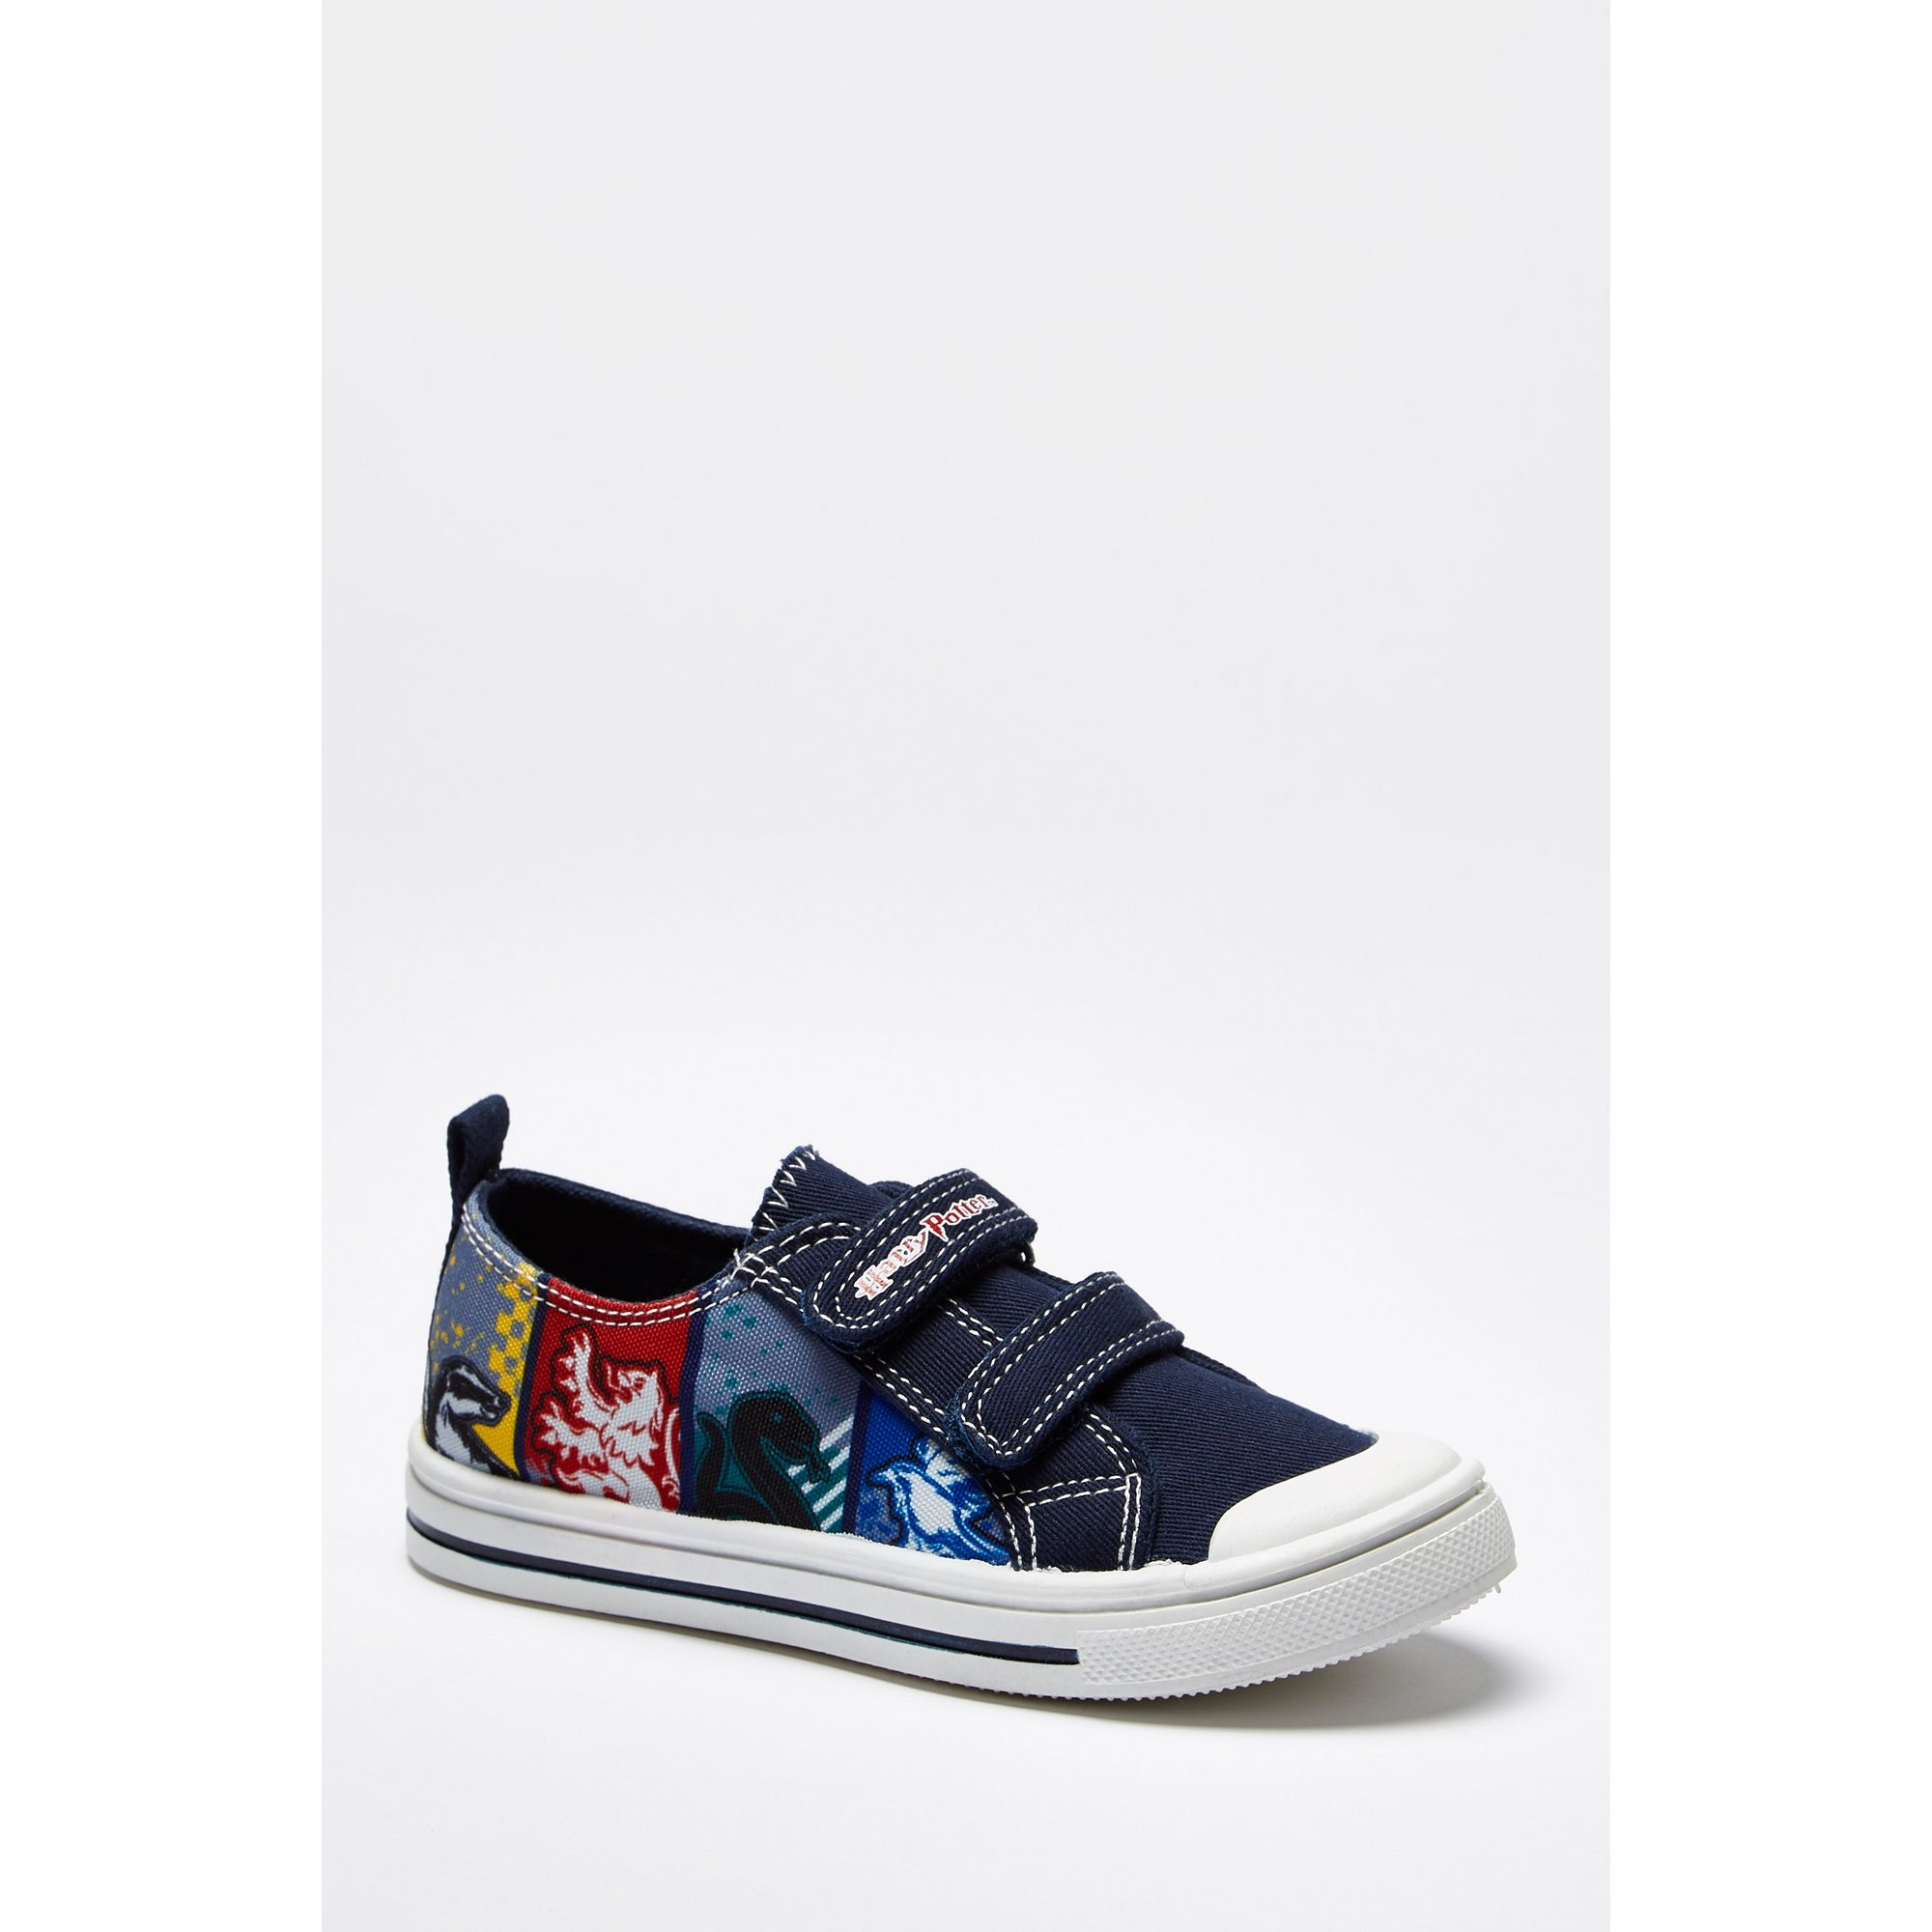 Image of Boys Harry Potter Strap Trainers